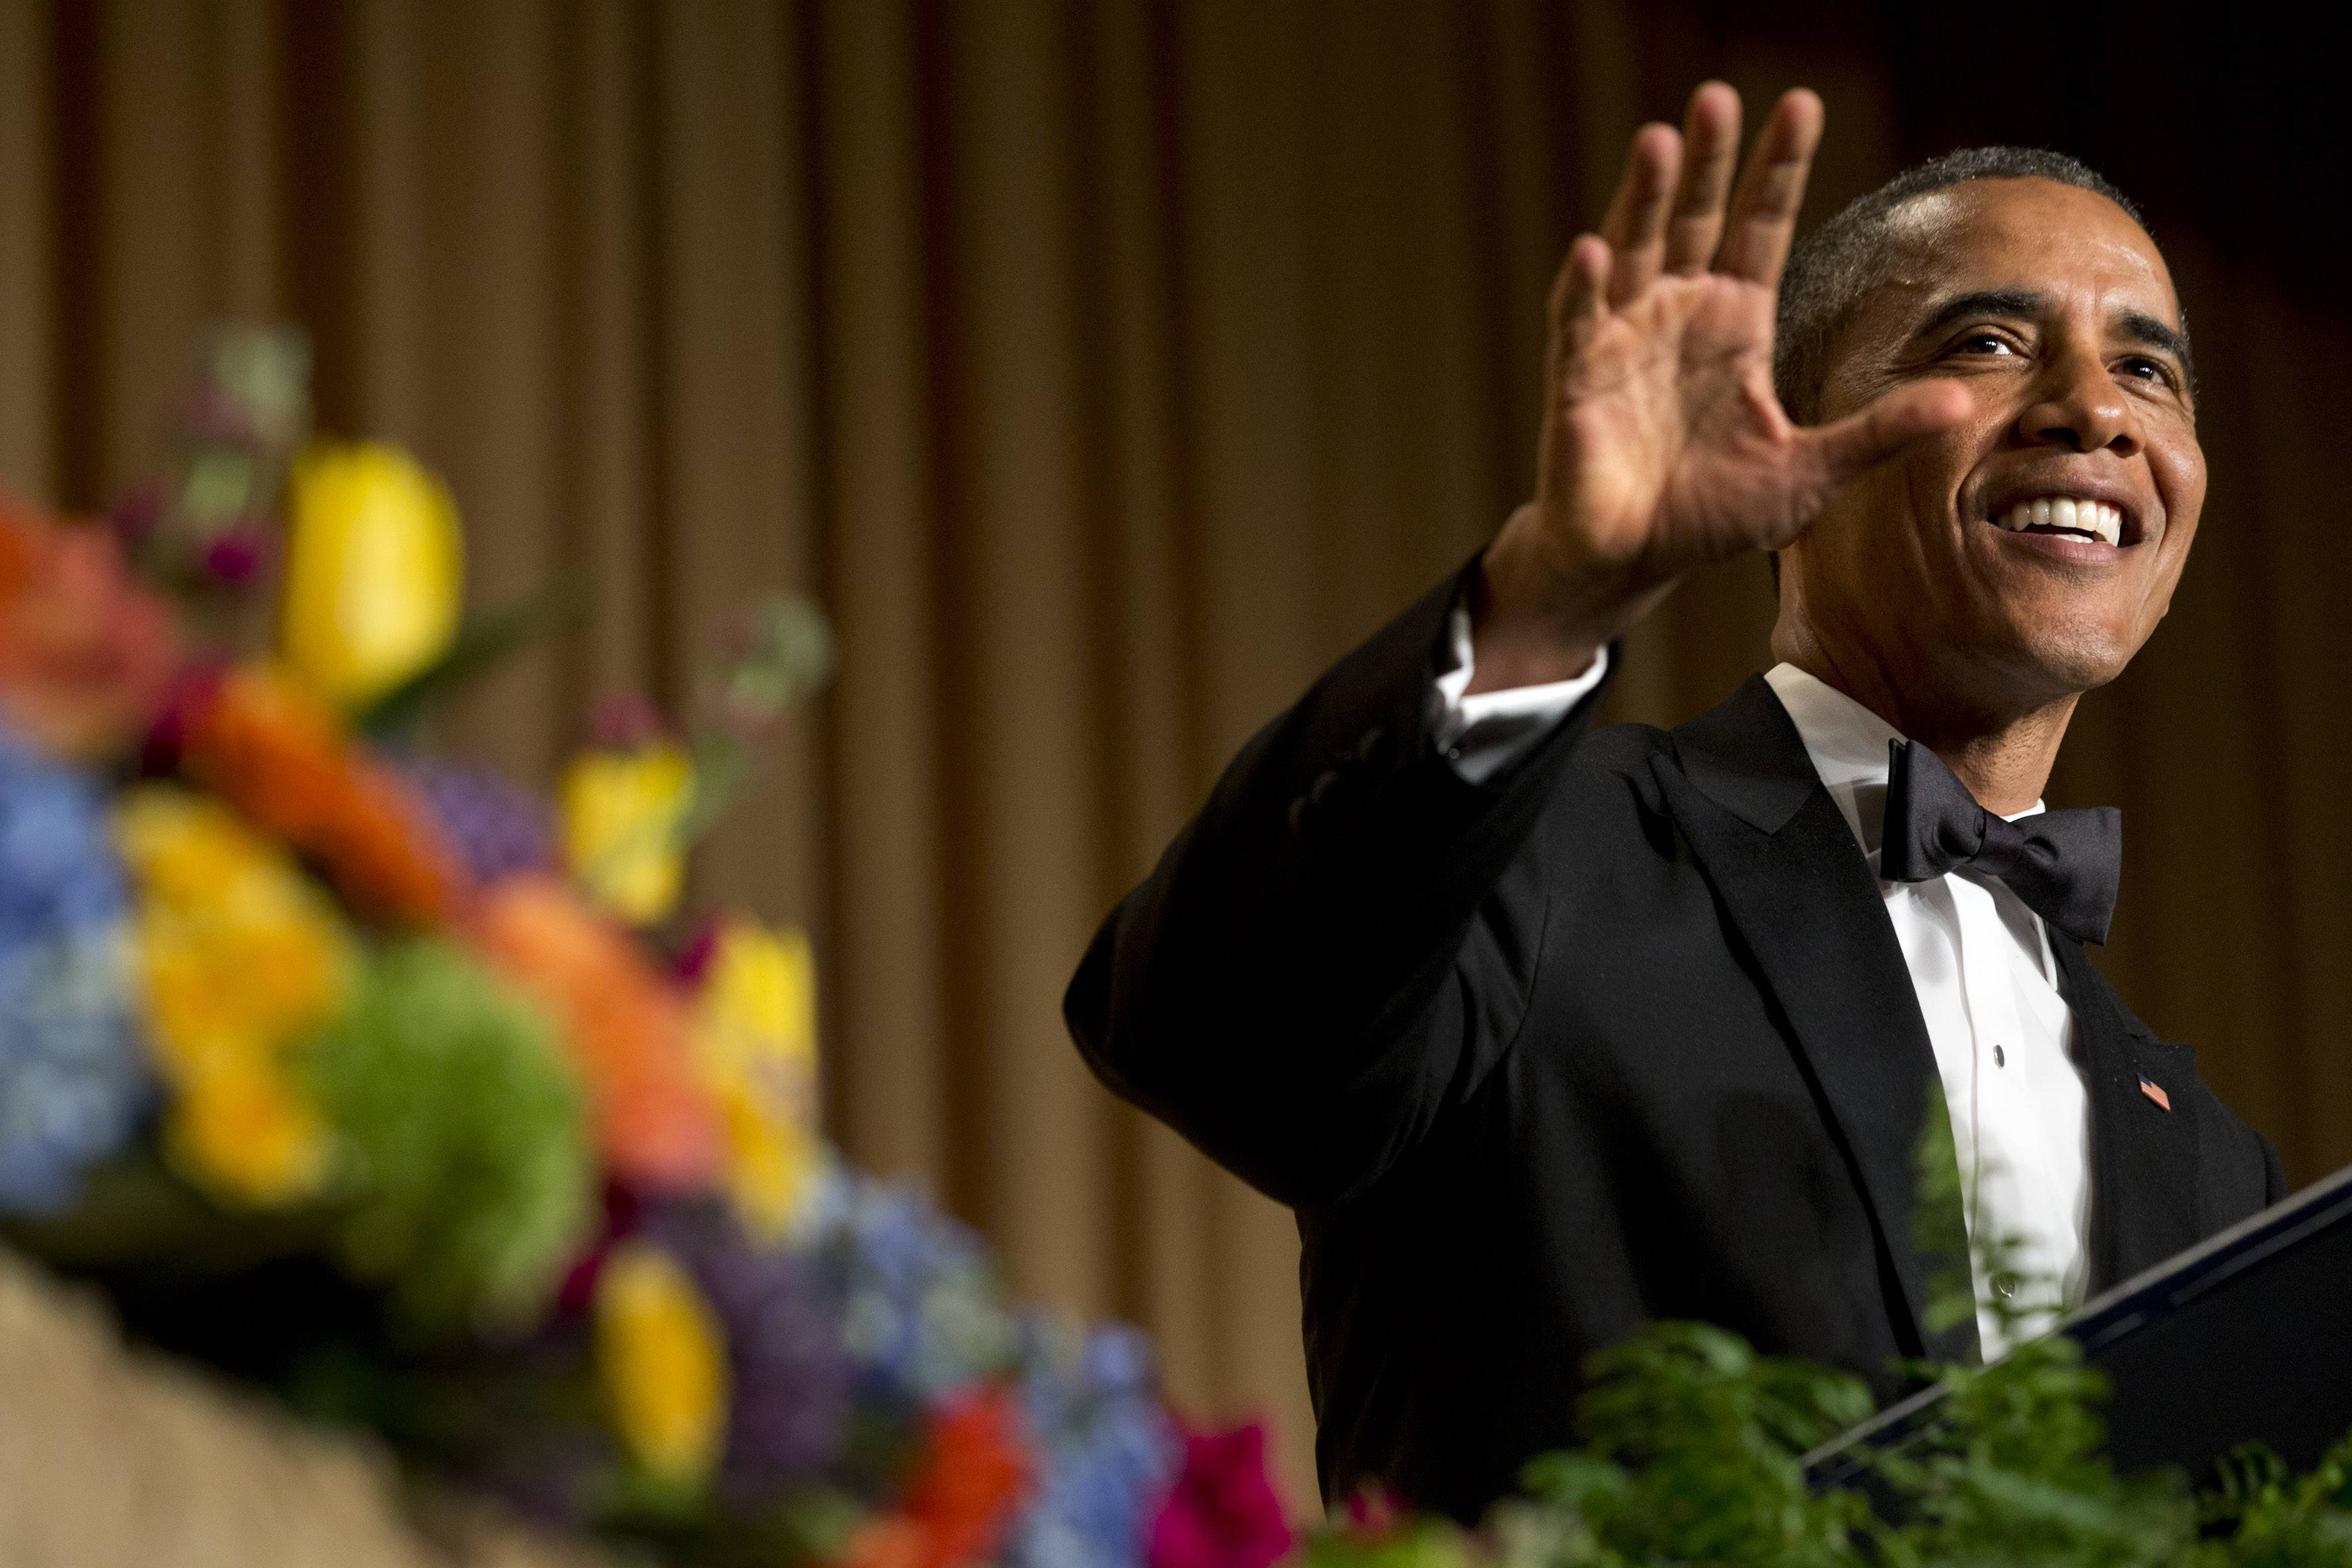 President Barack Obama gestures and smiles during his speech at the White House Correspondents' Association Dinner at the Washington Hilton Hotel Saturday in Washington.